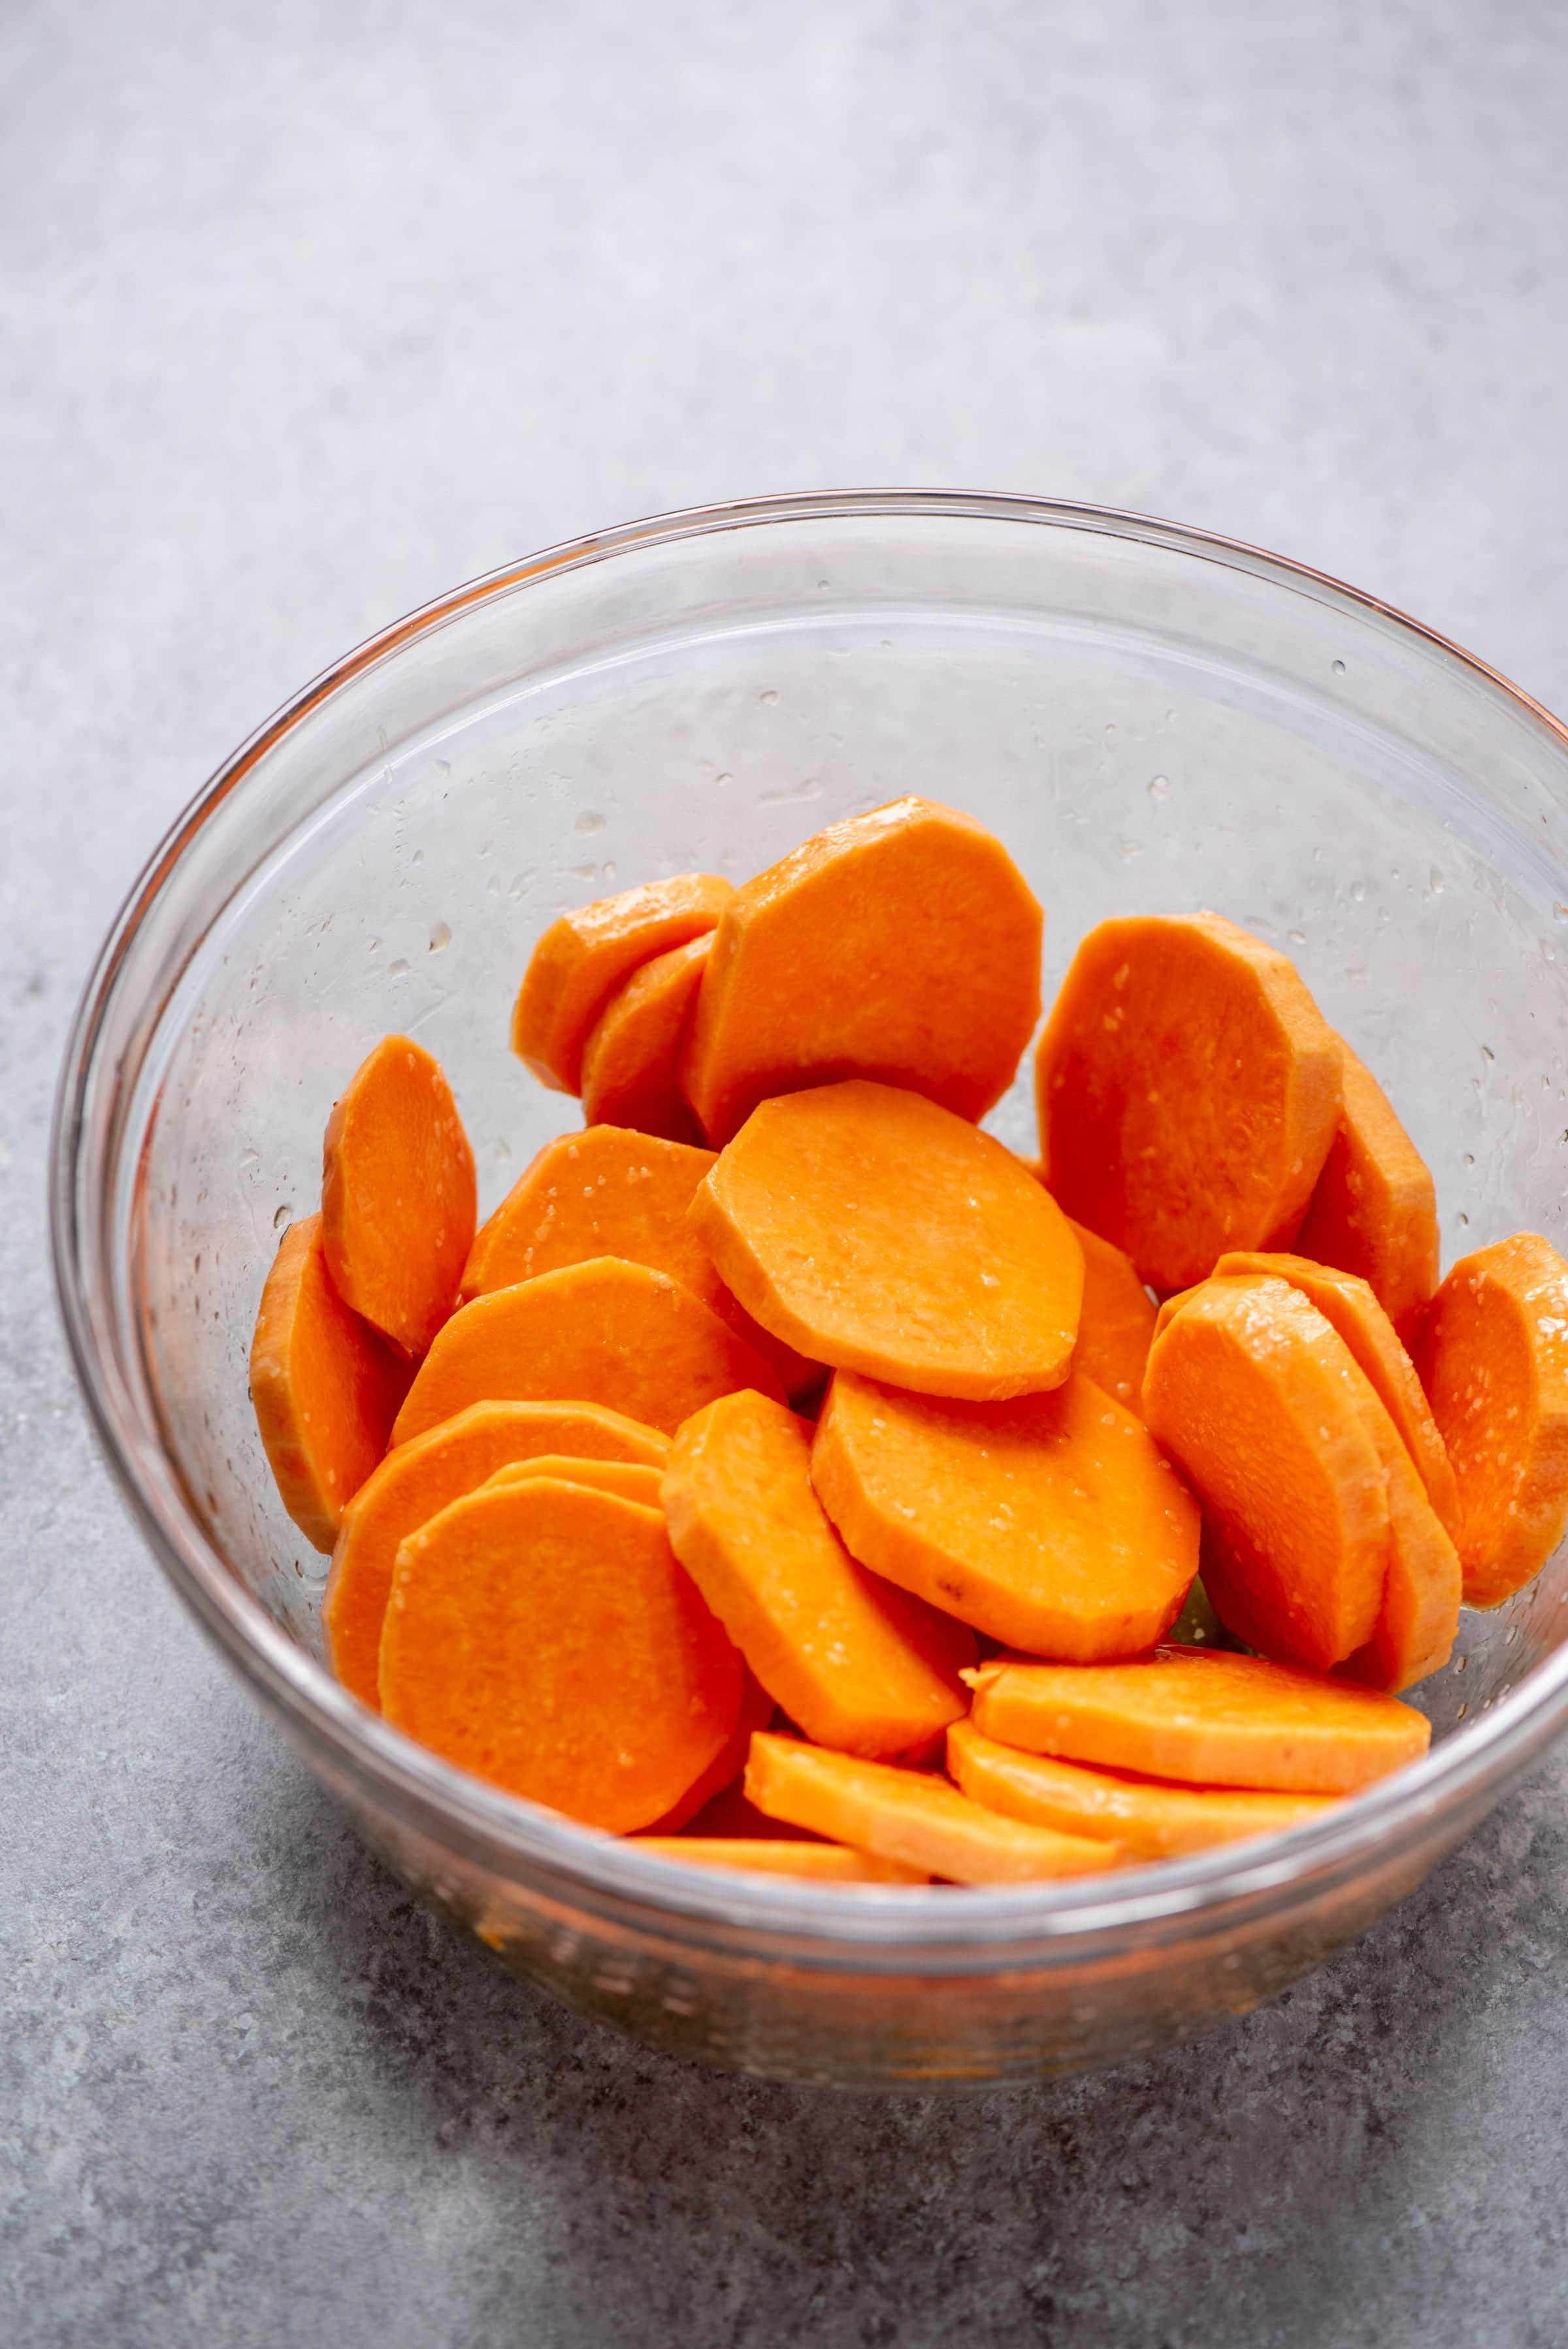 Sweet potato slices in a clear glass bowl